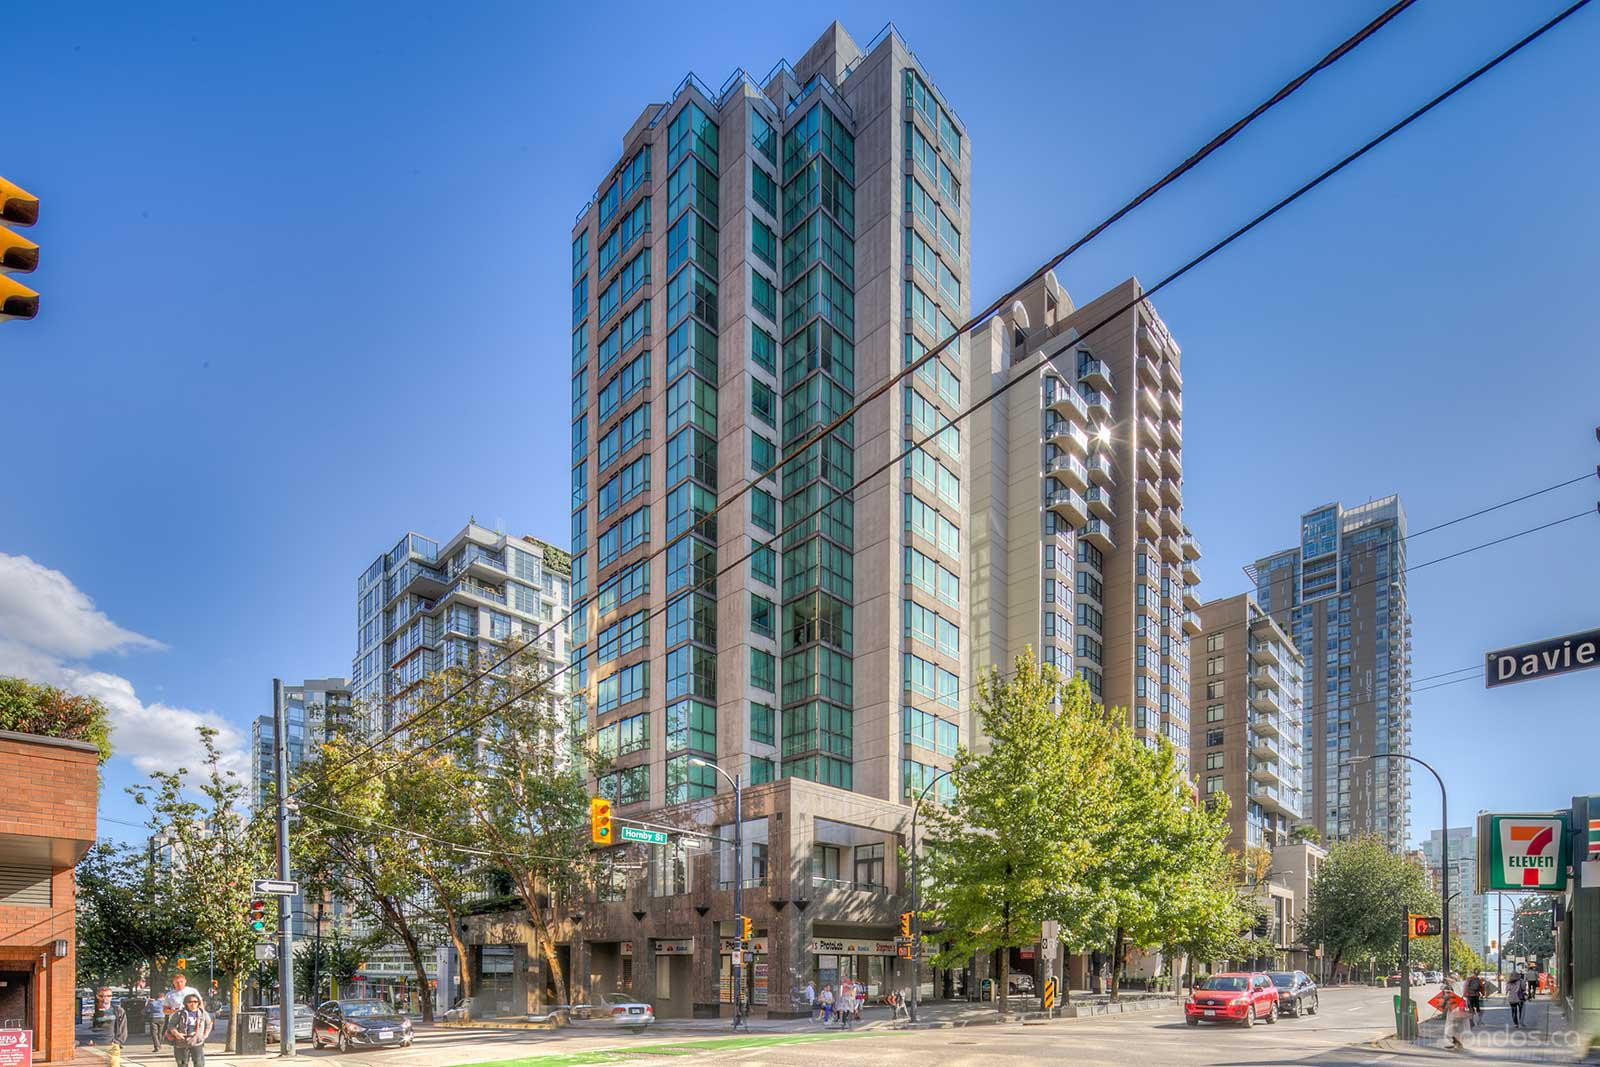 The Landis Hotel & Suites at 1200 Hornby St, Vancouver 1